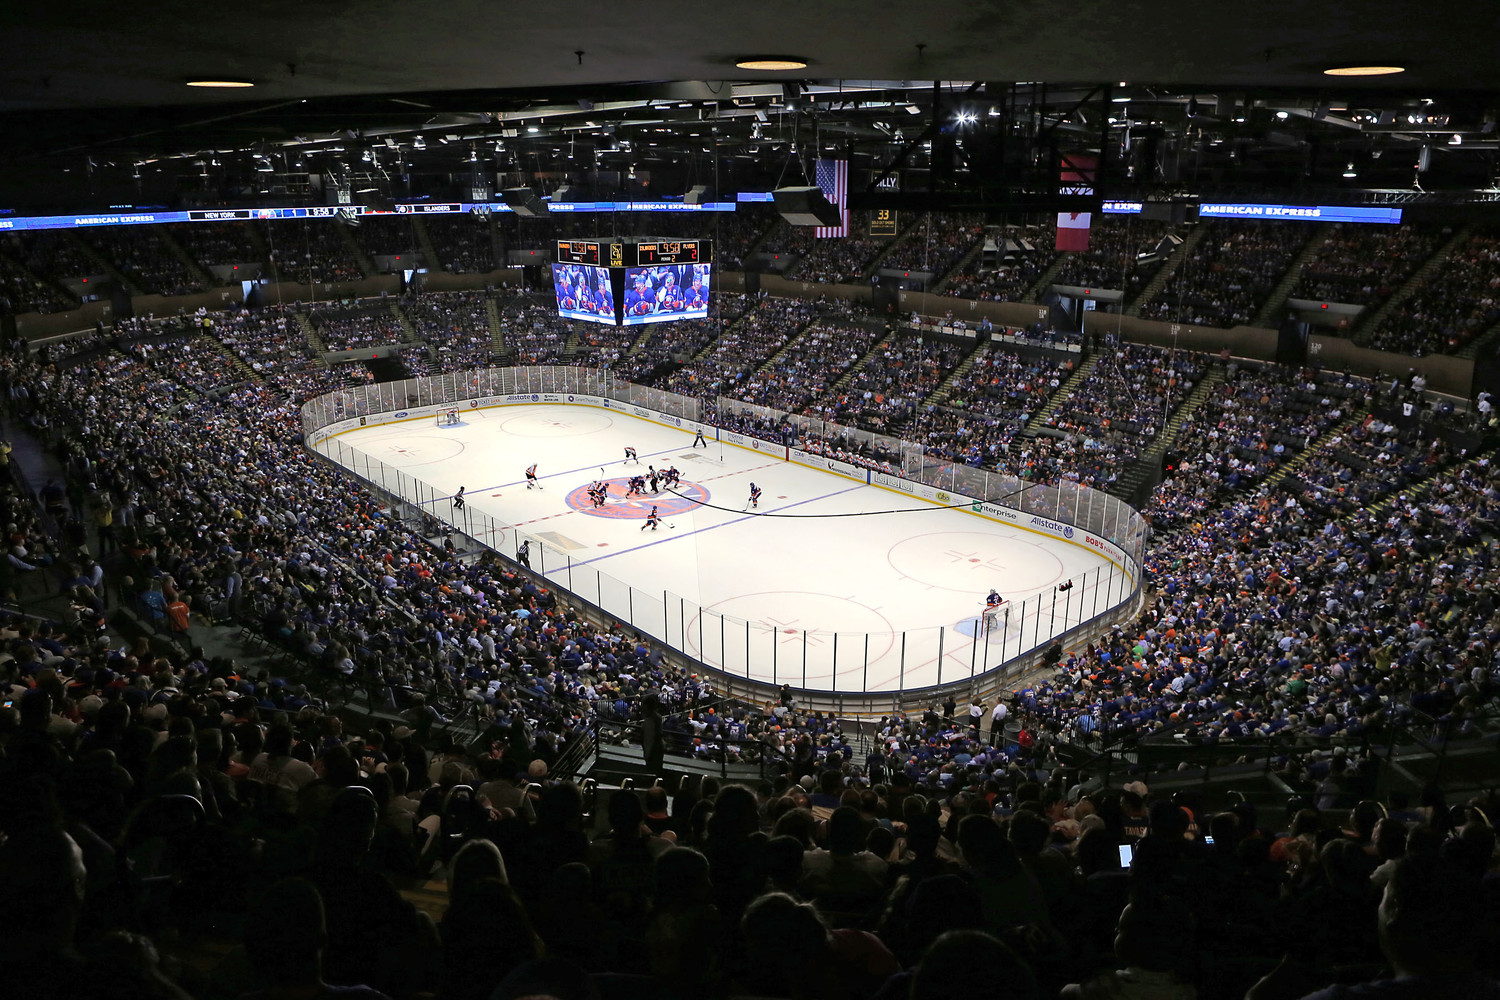 In a preseason contest, 13,917 fans returned to the renovated Nassau Coliseum to watch the sold-out game as the Islanders beat the Philadelphia Flyers 3-2 in overtime.